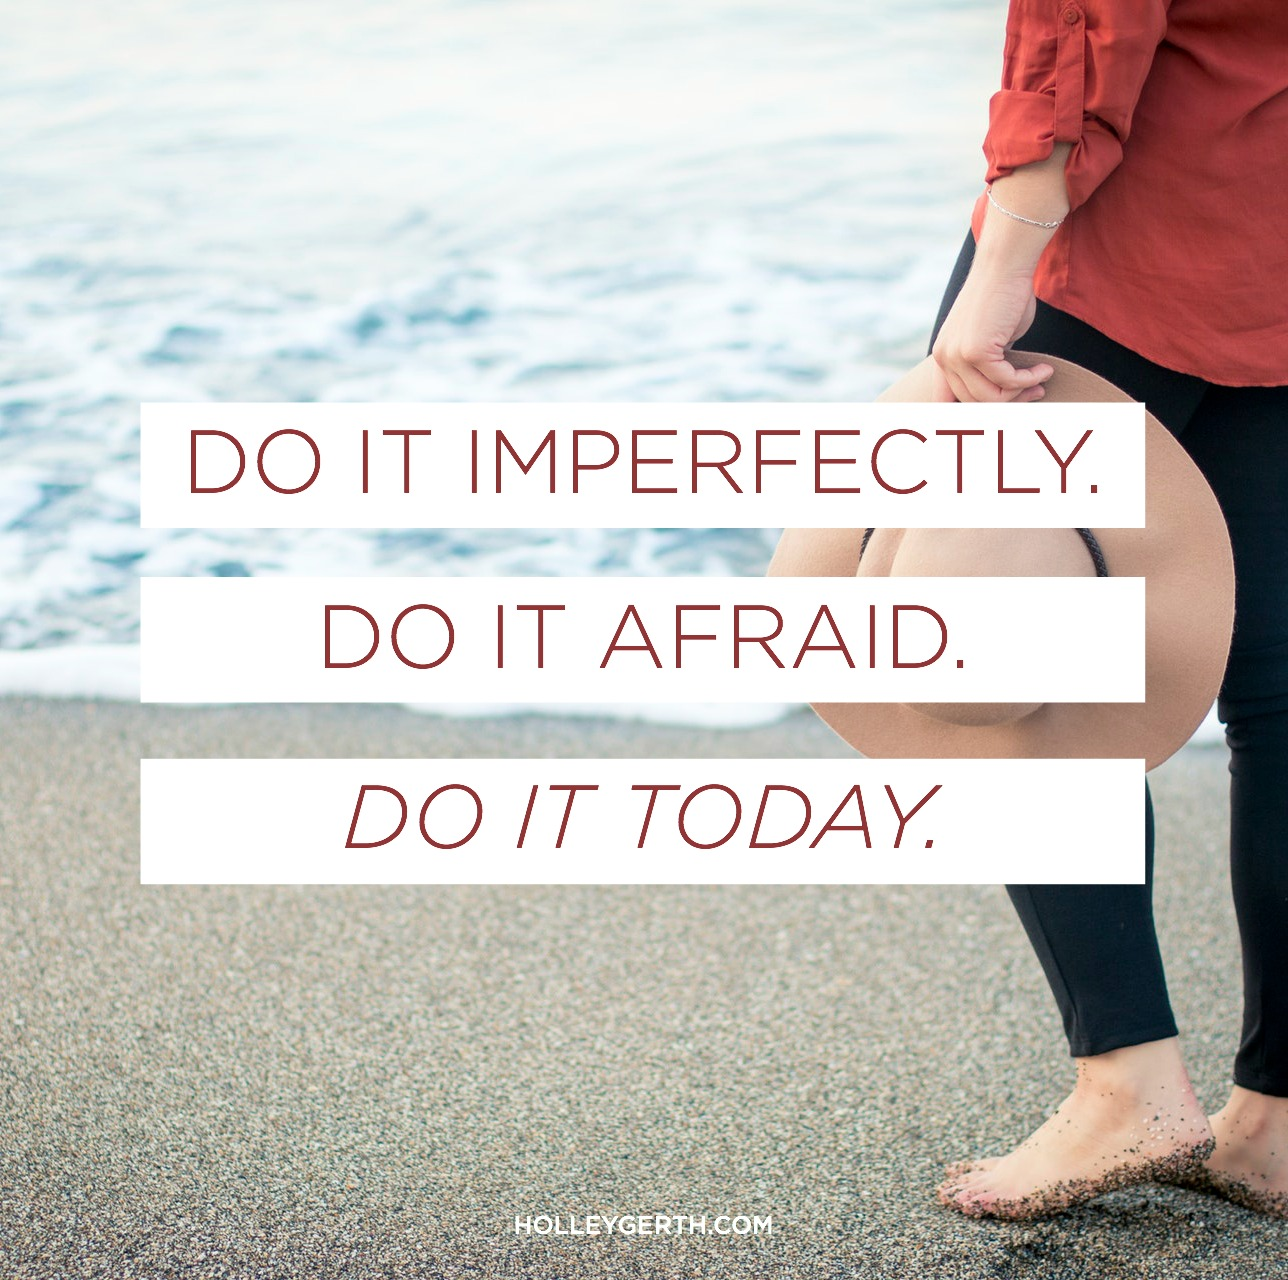 Do it imperfectly. Do it afraid. Do it today.